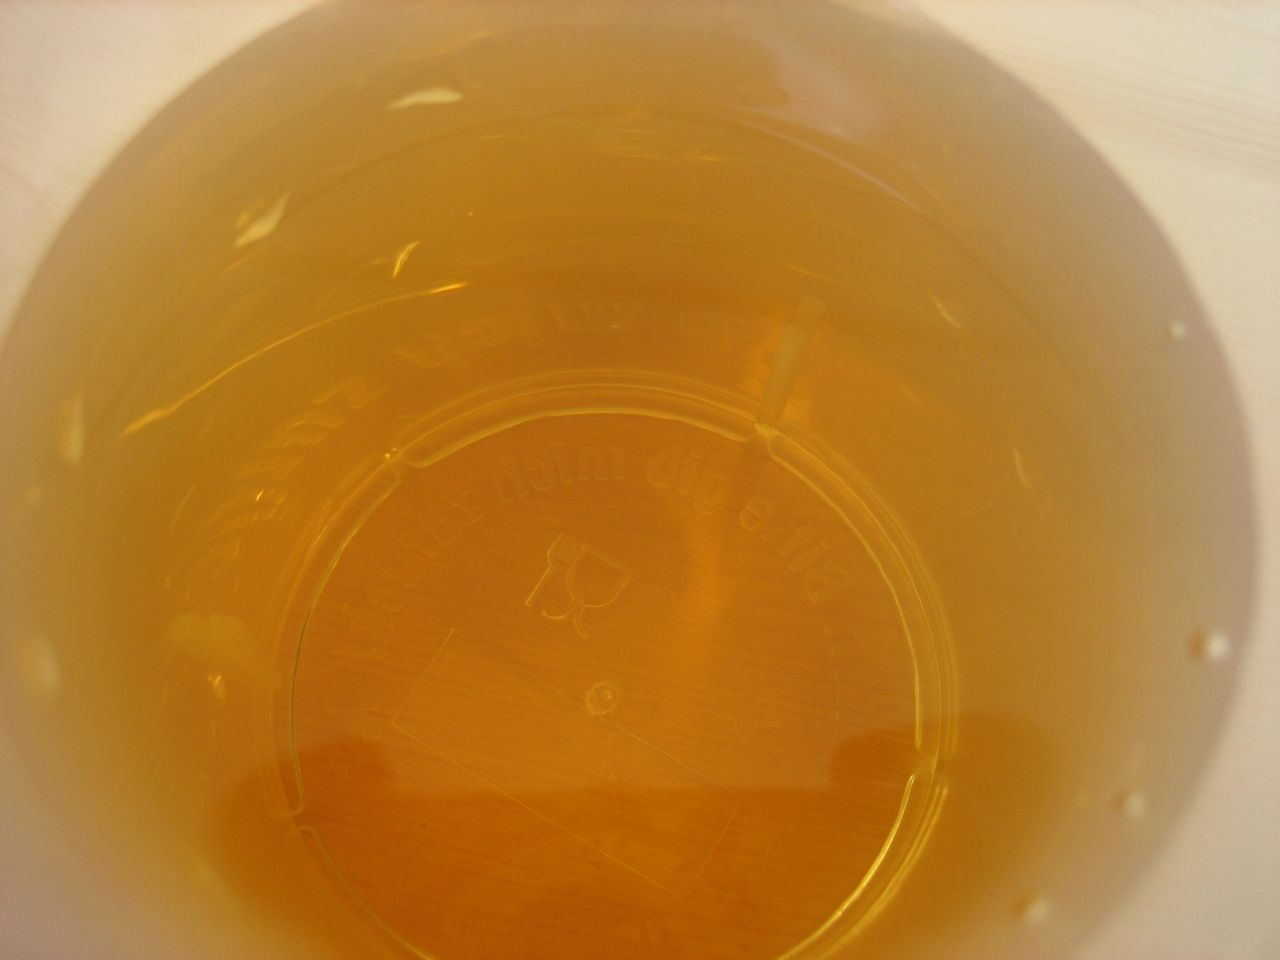 A golden glass of mead